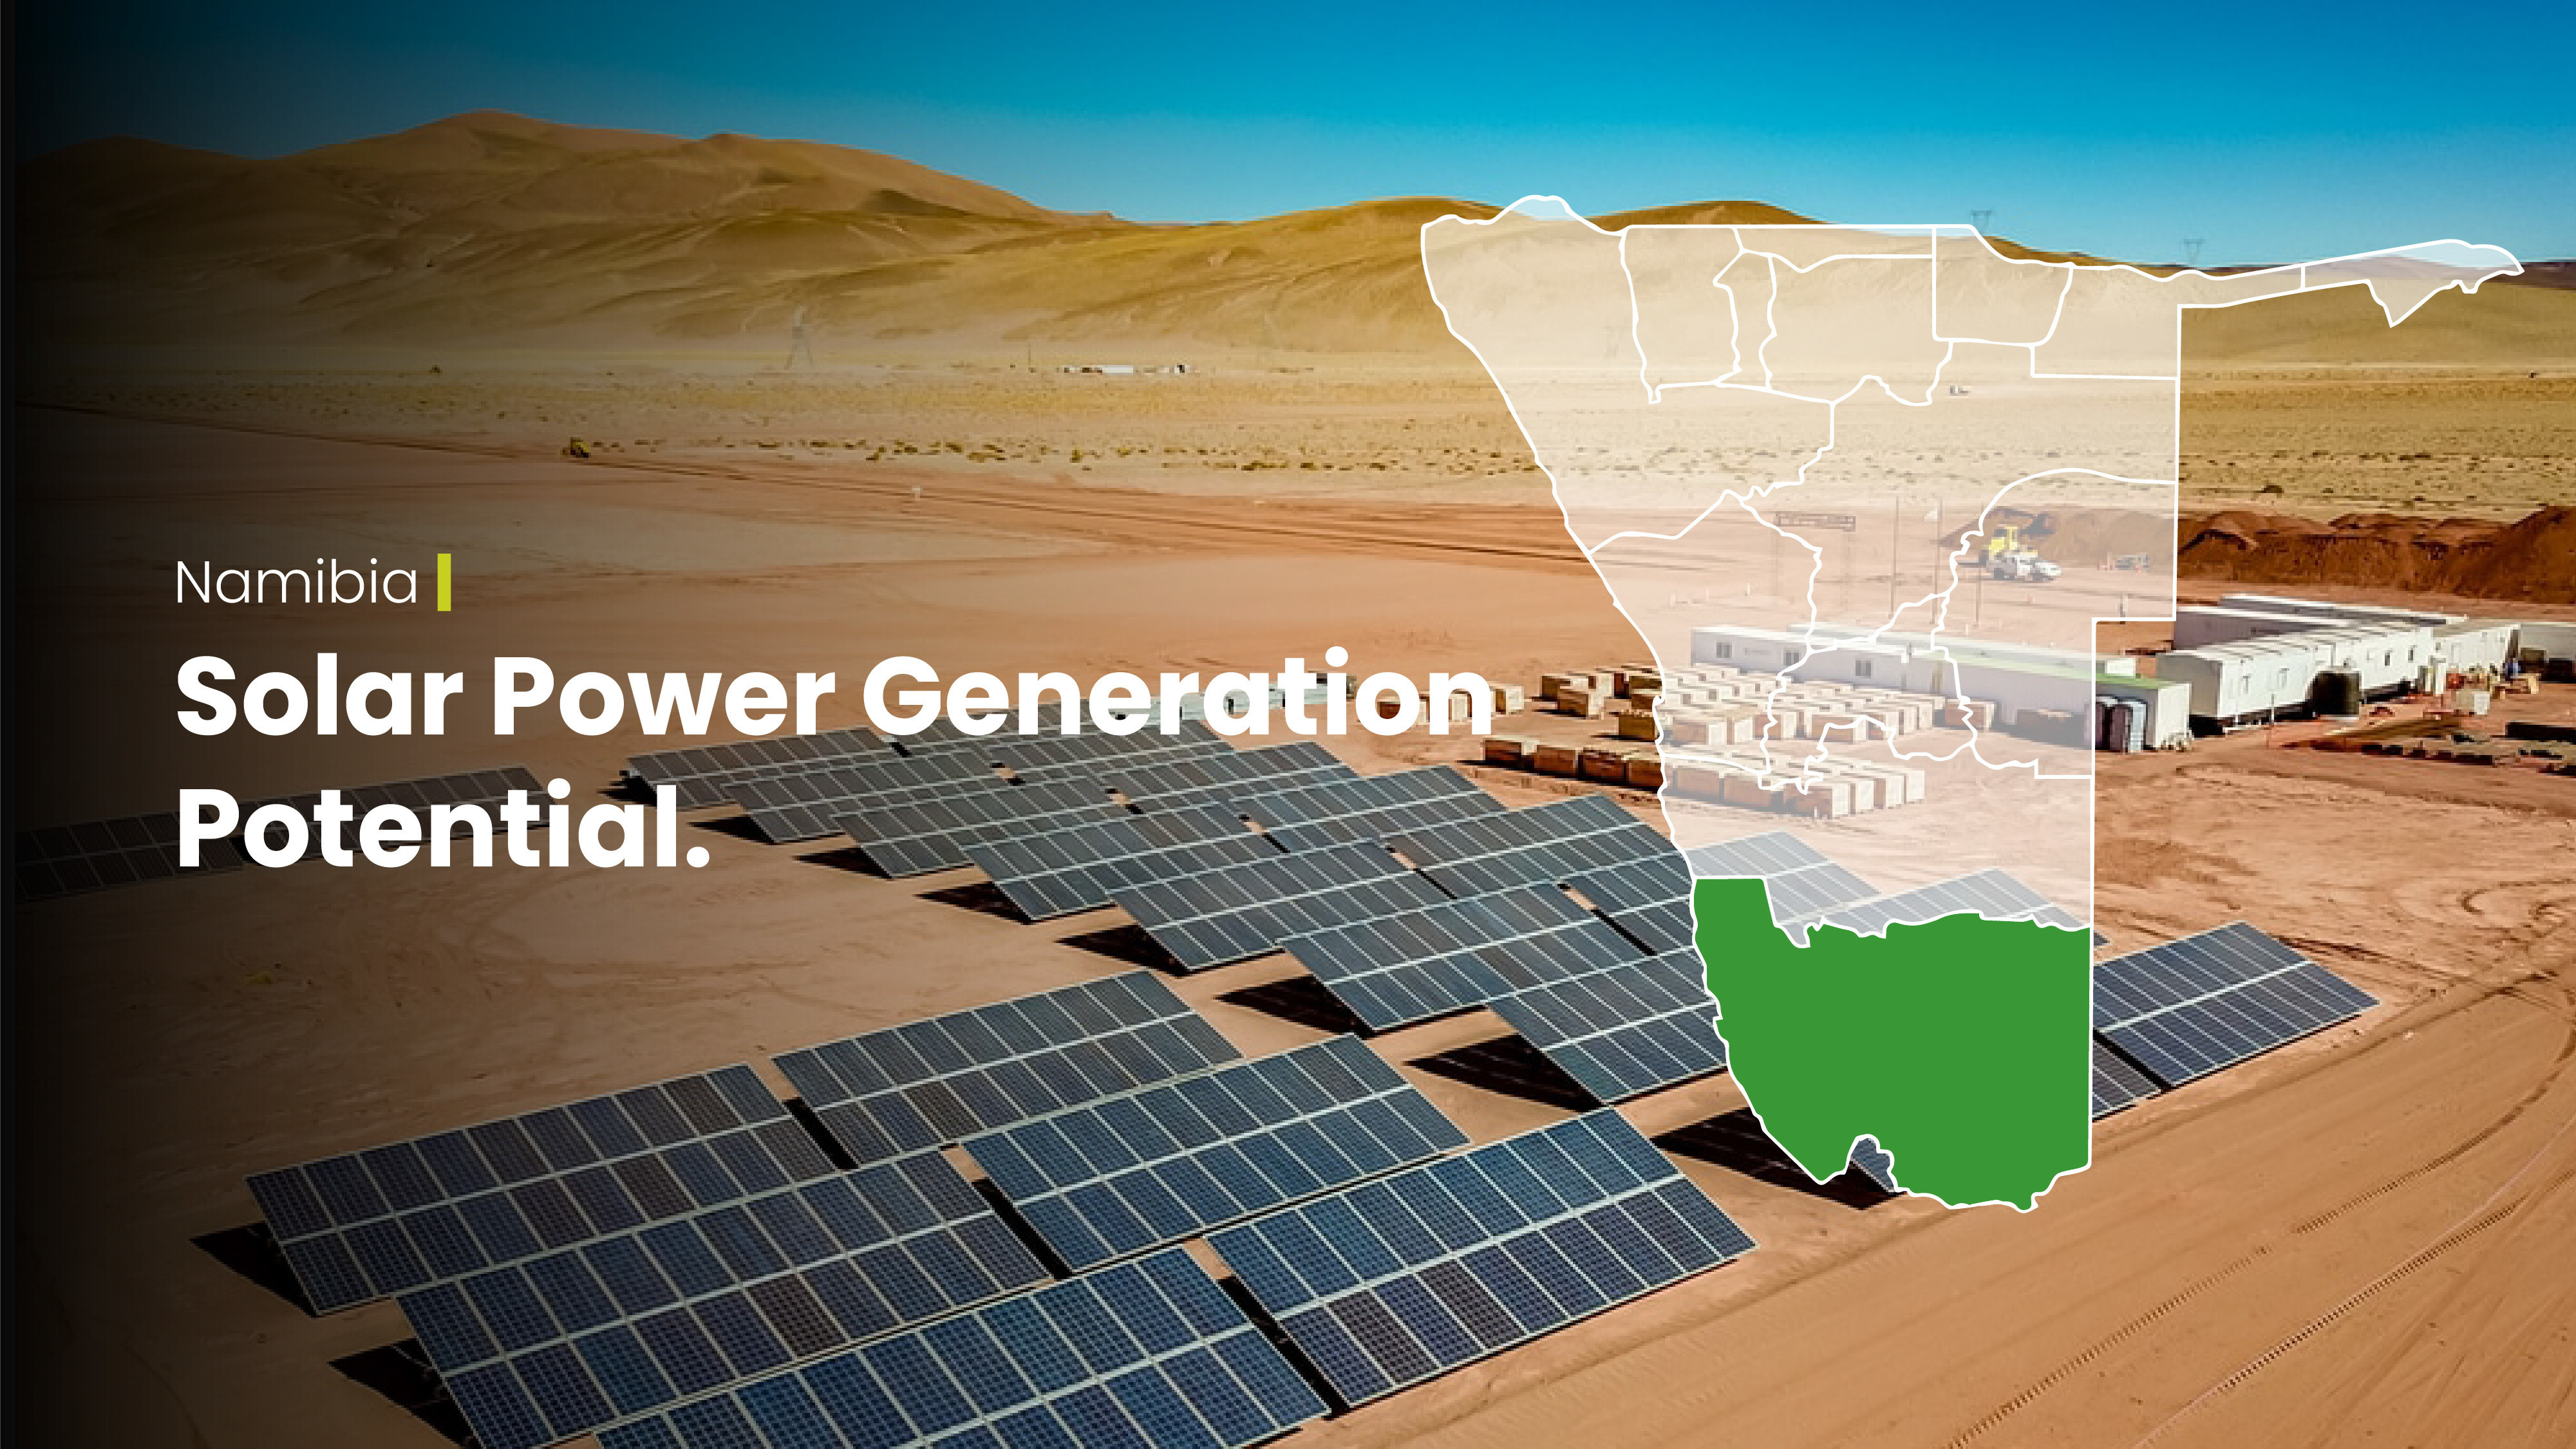 The generation of solar power will complement Namibia's available green energy portfolio